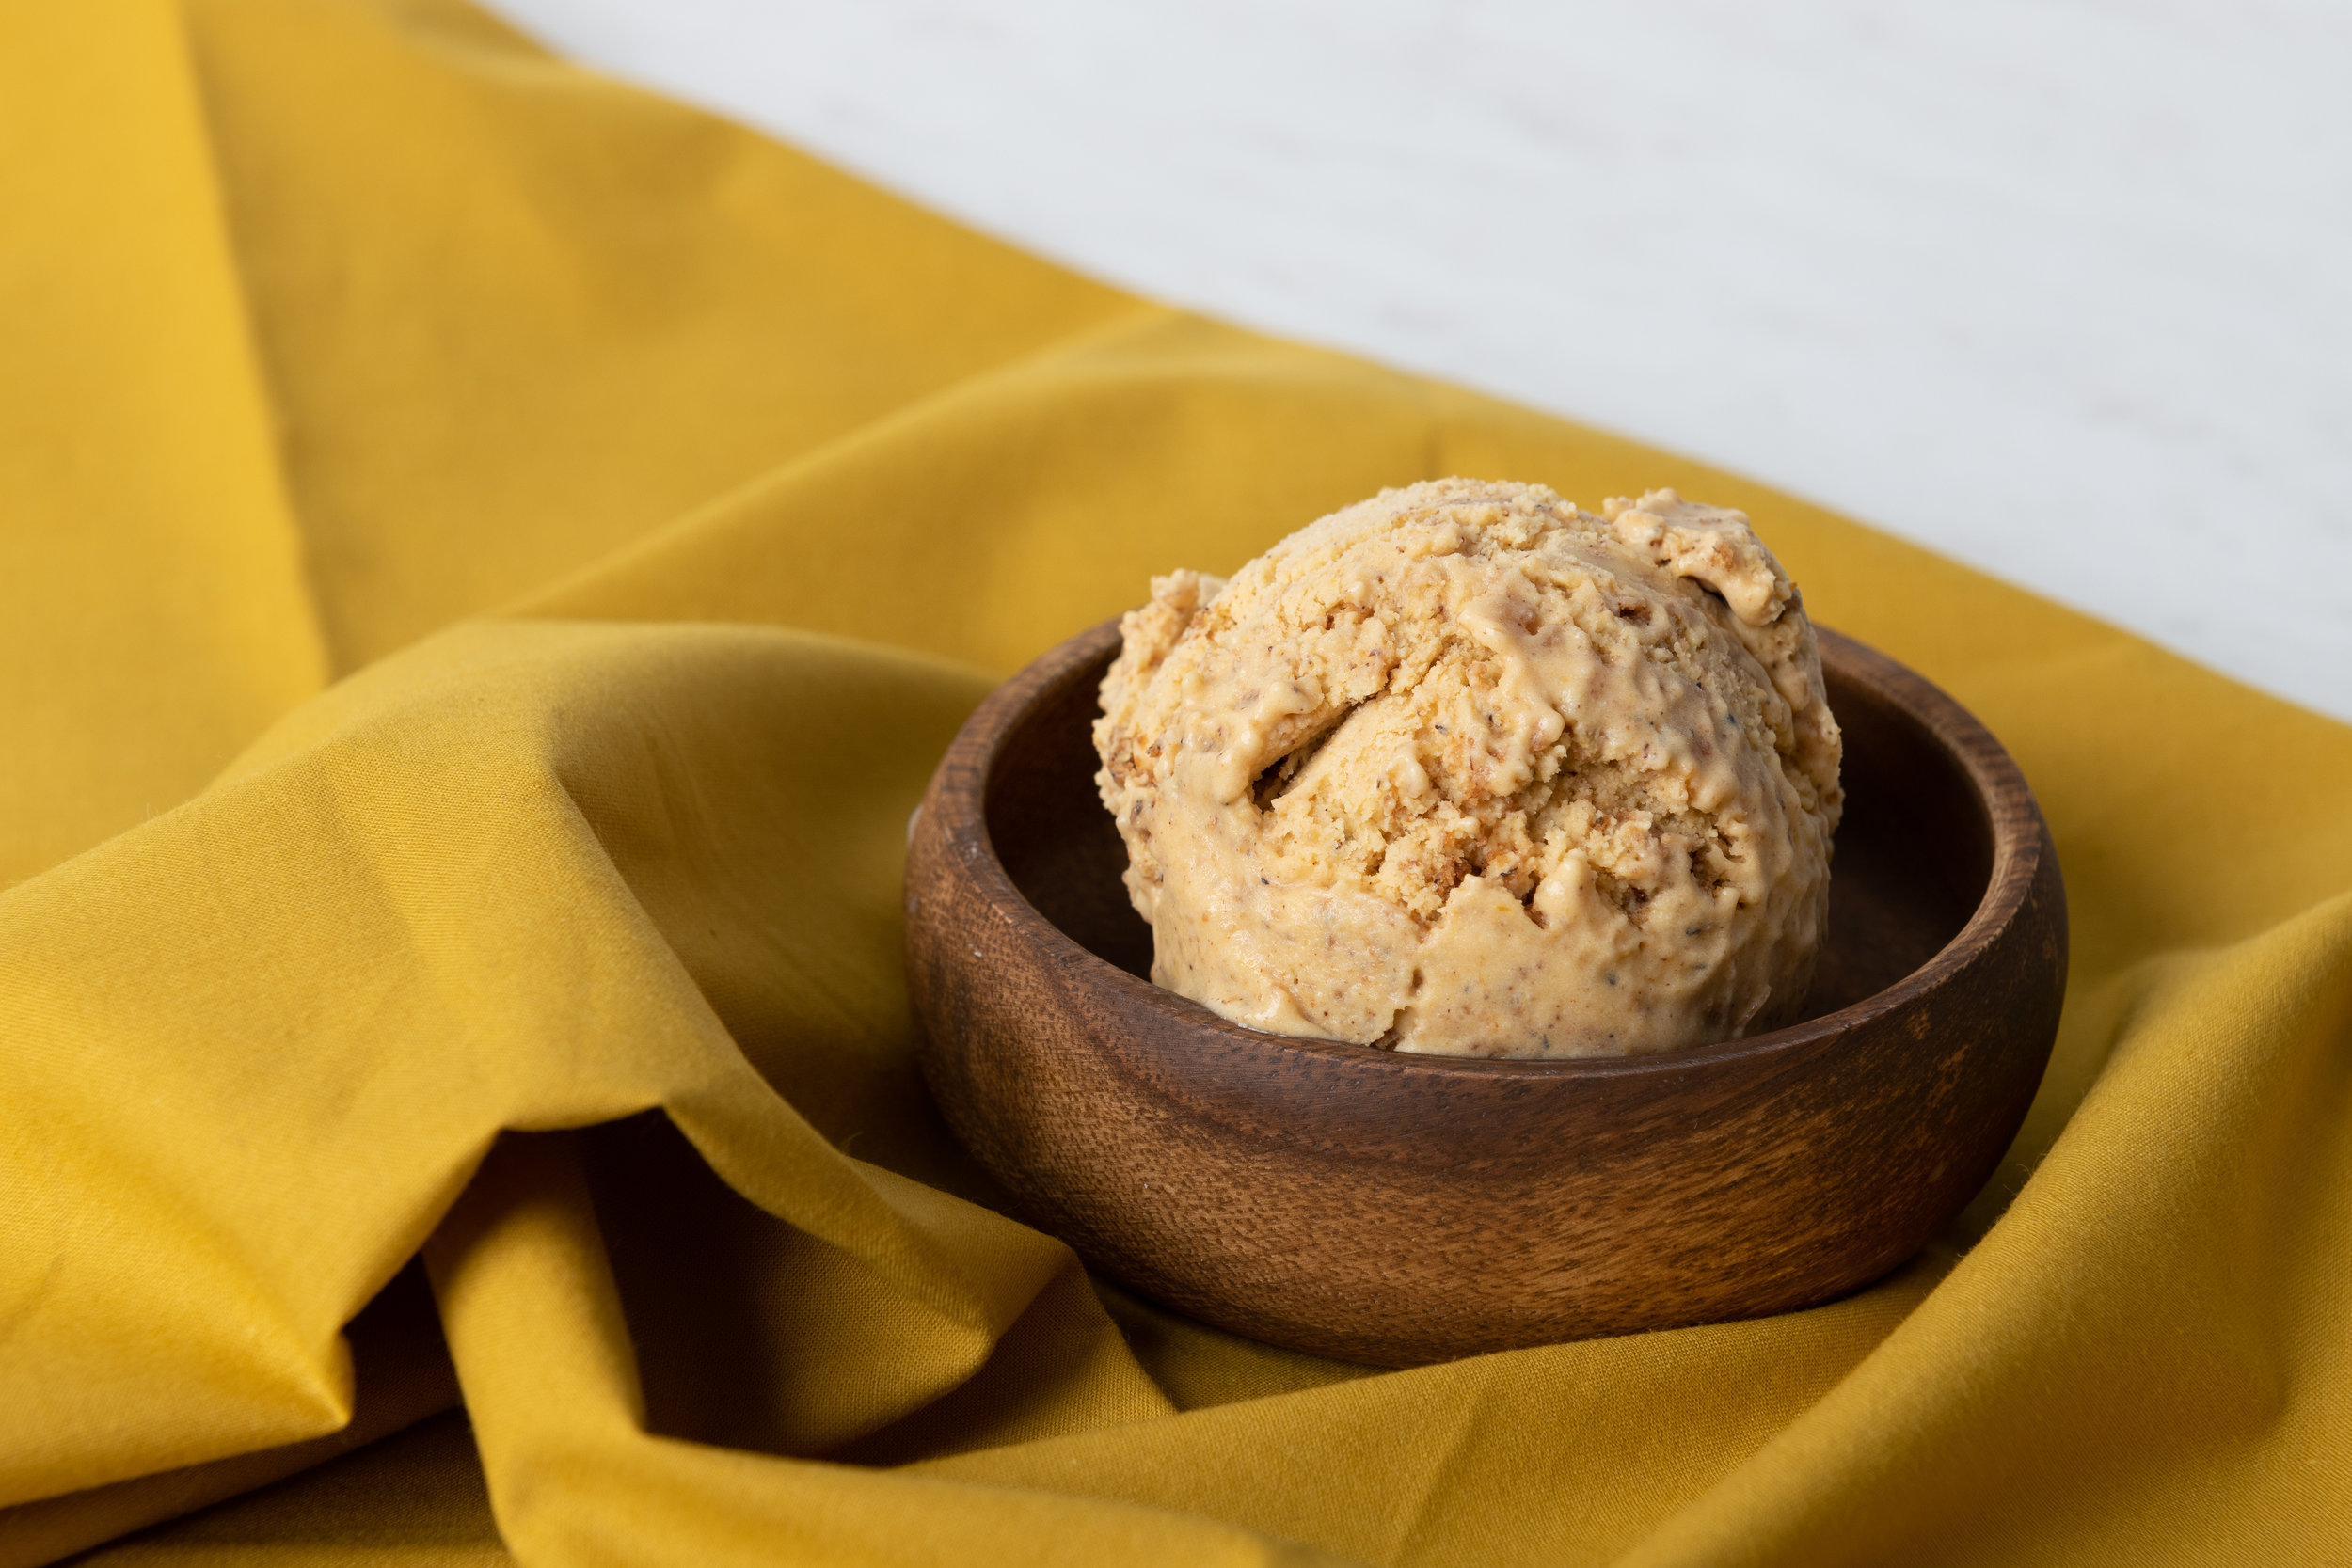 PUMPKIN GARAM MASALA CRUMBLE<br><strong>A pumpkin ice cream with the sweet and savory spices of garam masala, with a smoky black cardamom graham cracker folded throughout.</strong>